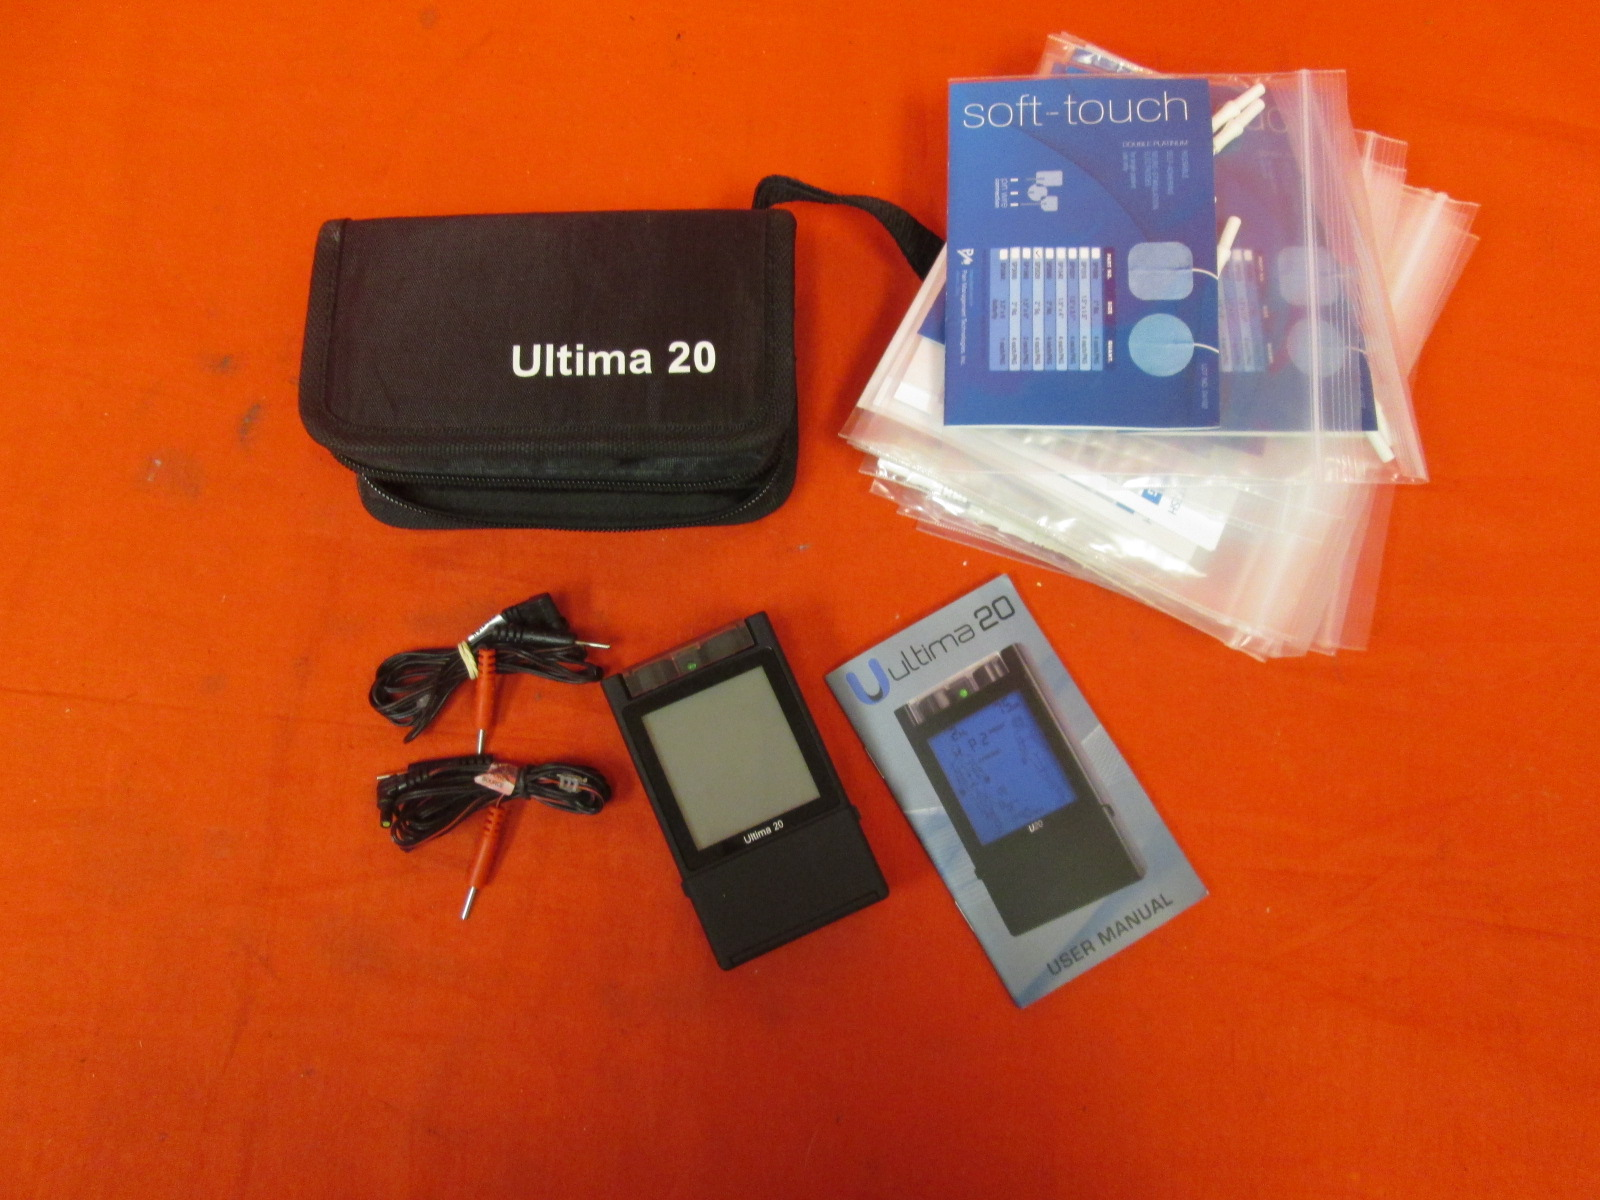 Ultima 20 Tens Unit Pain Management Technologies PMT-U20B